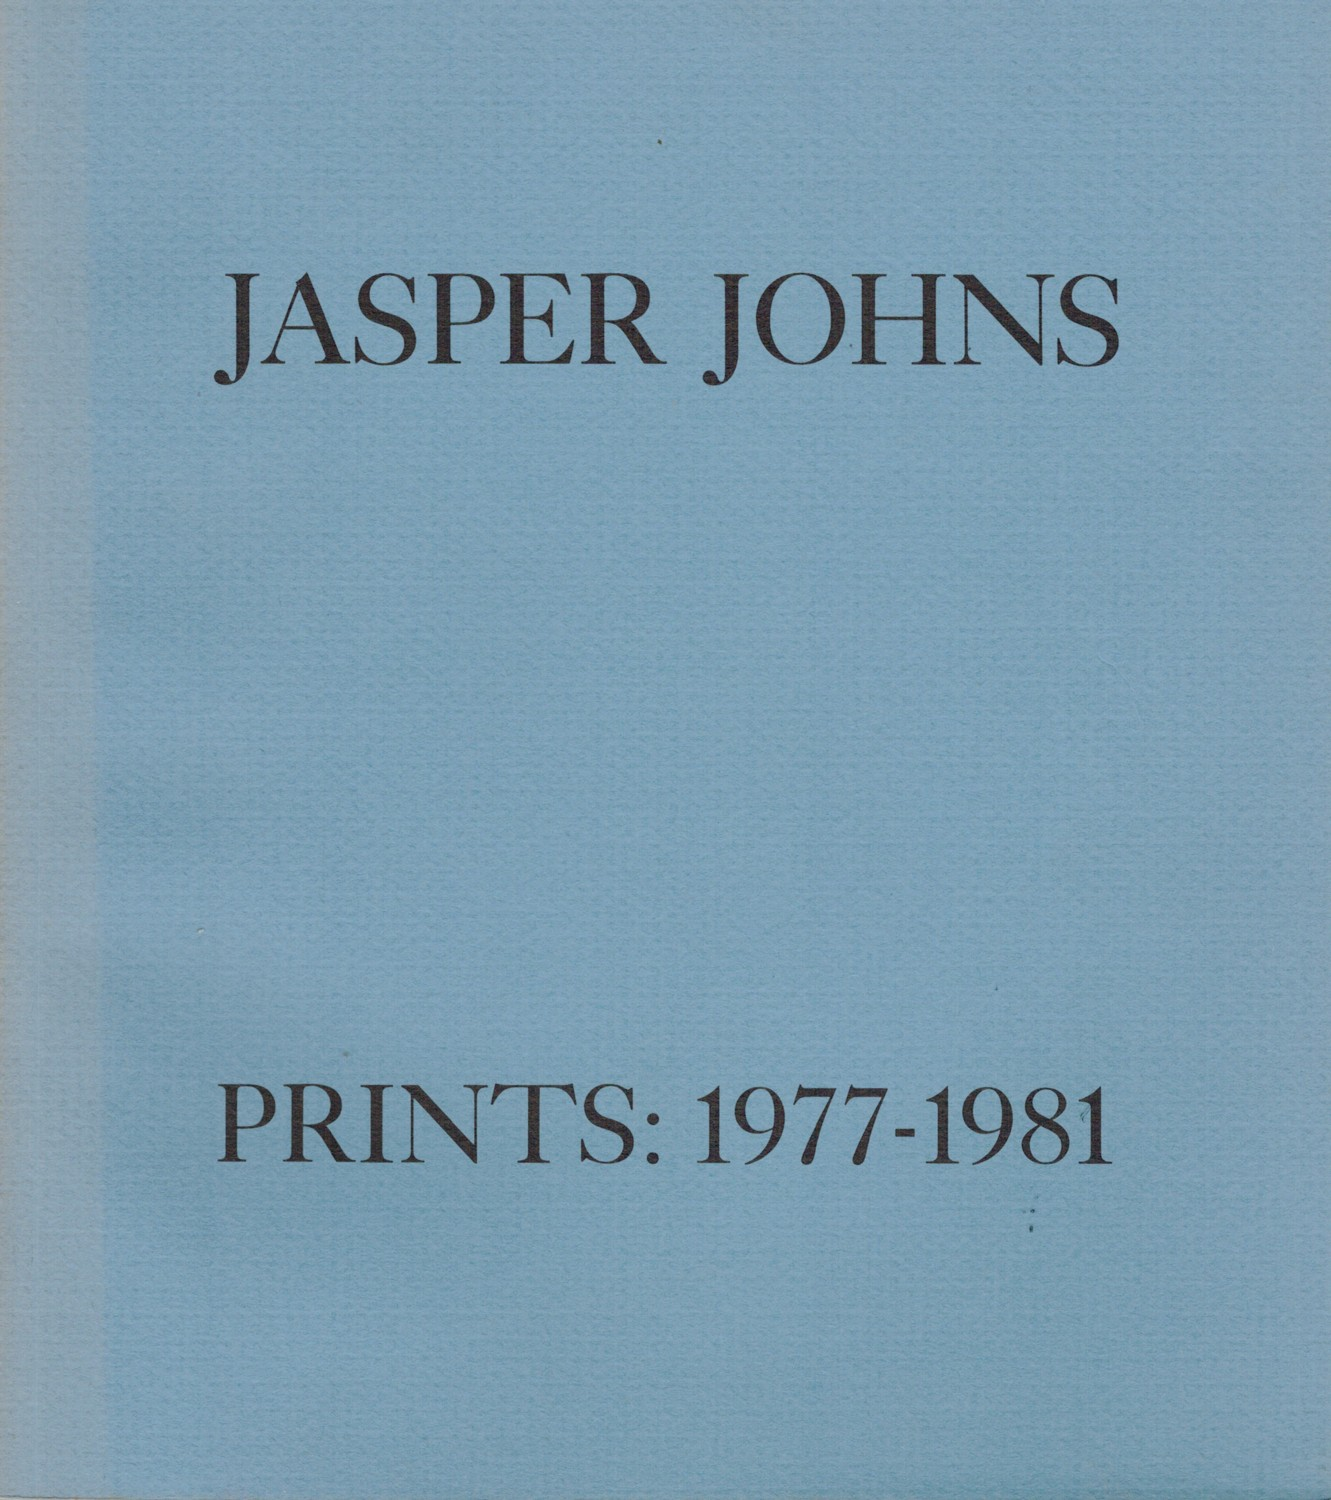 (JOHNS, JASPER). GOLDMAN, JUDITH - JASPER JOHNS: PRINTS 1977-1981